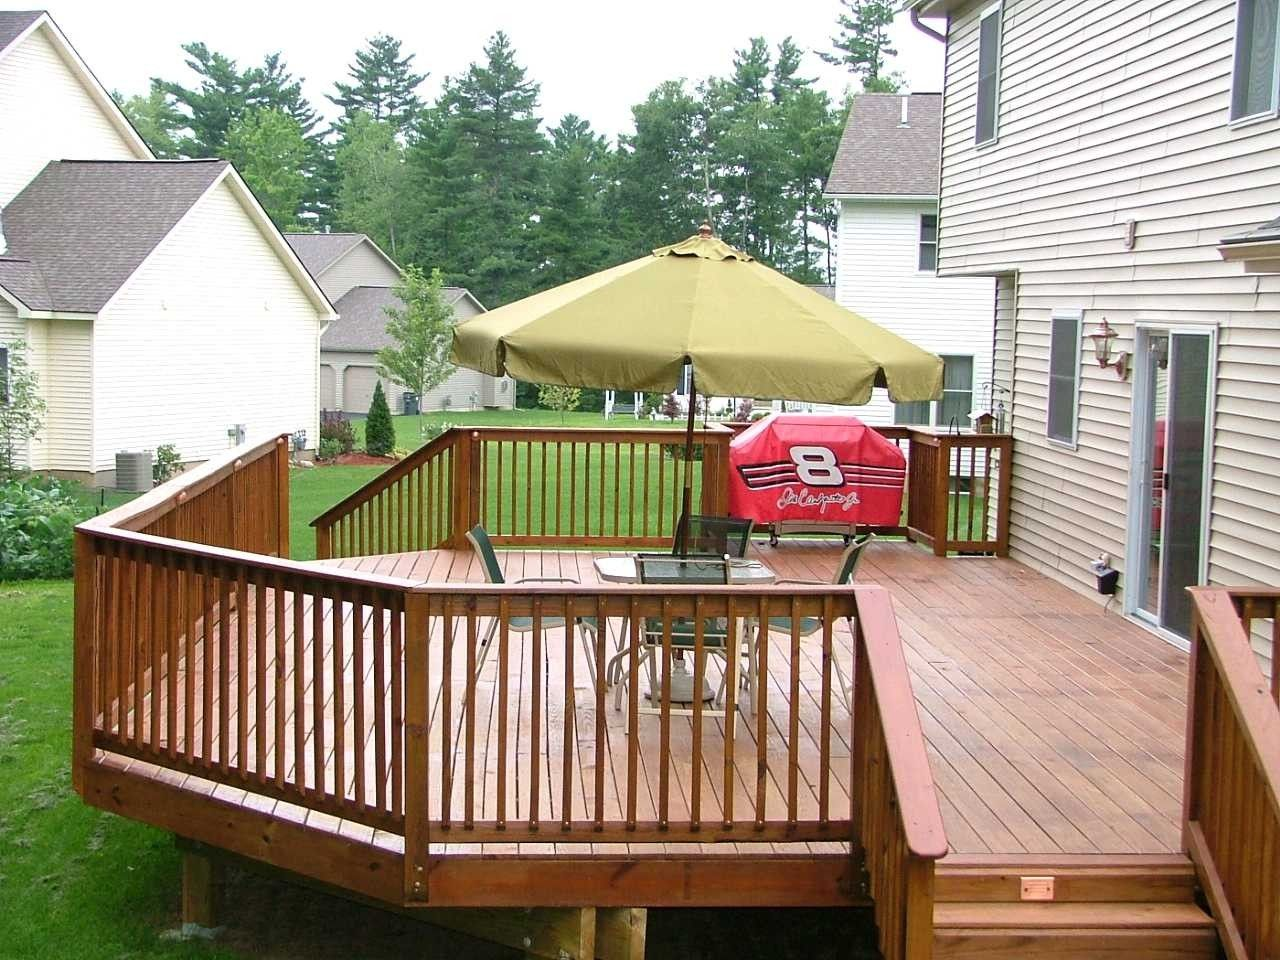 Pin By Kimberly Best Bryson On Deck Designs Building A Deck Deck Design Decks And Porches